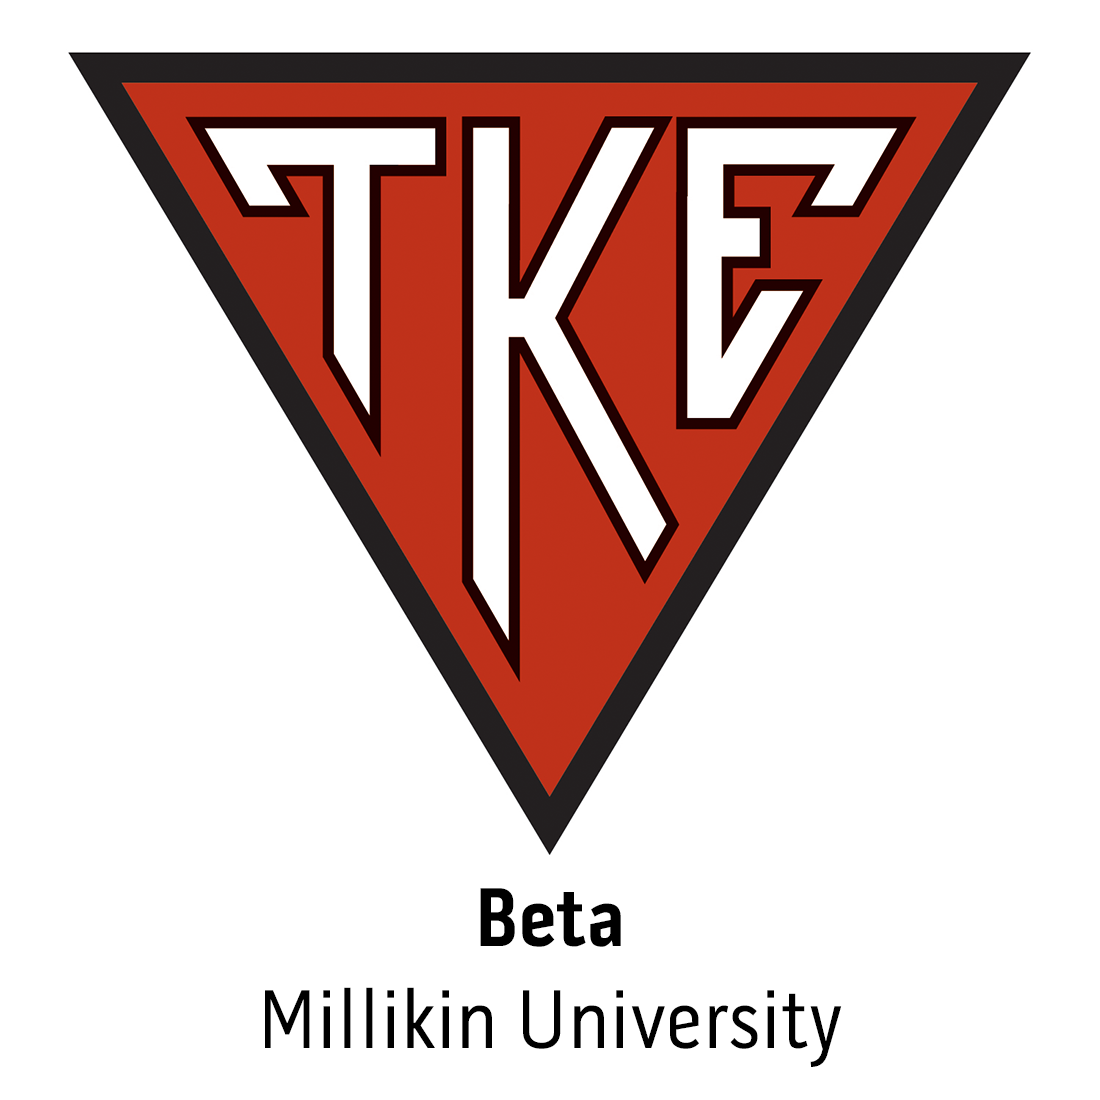 Beta Chapter at Millikin University